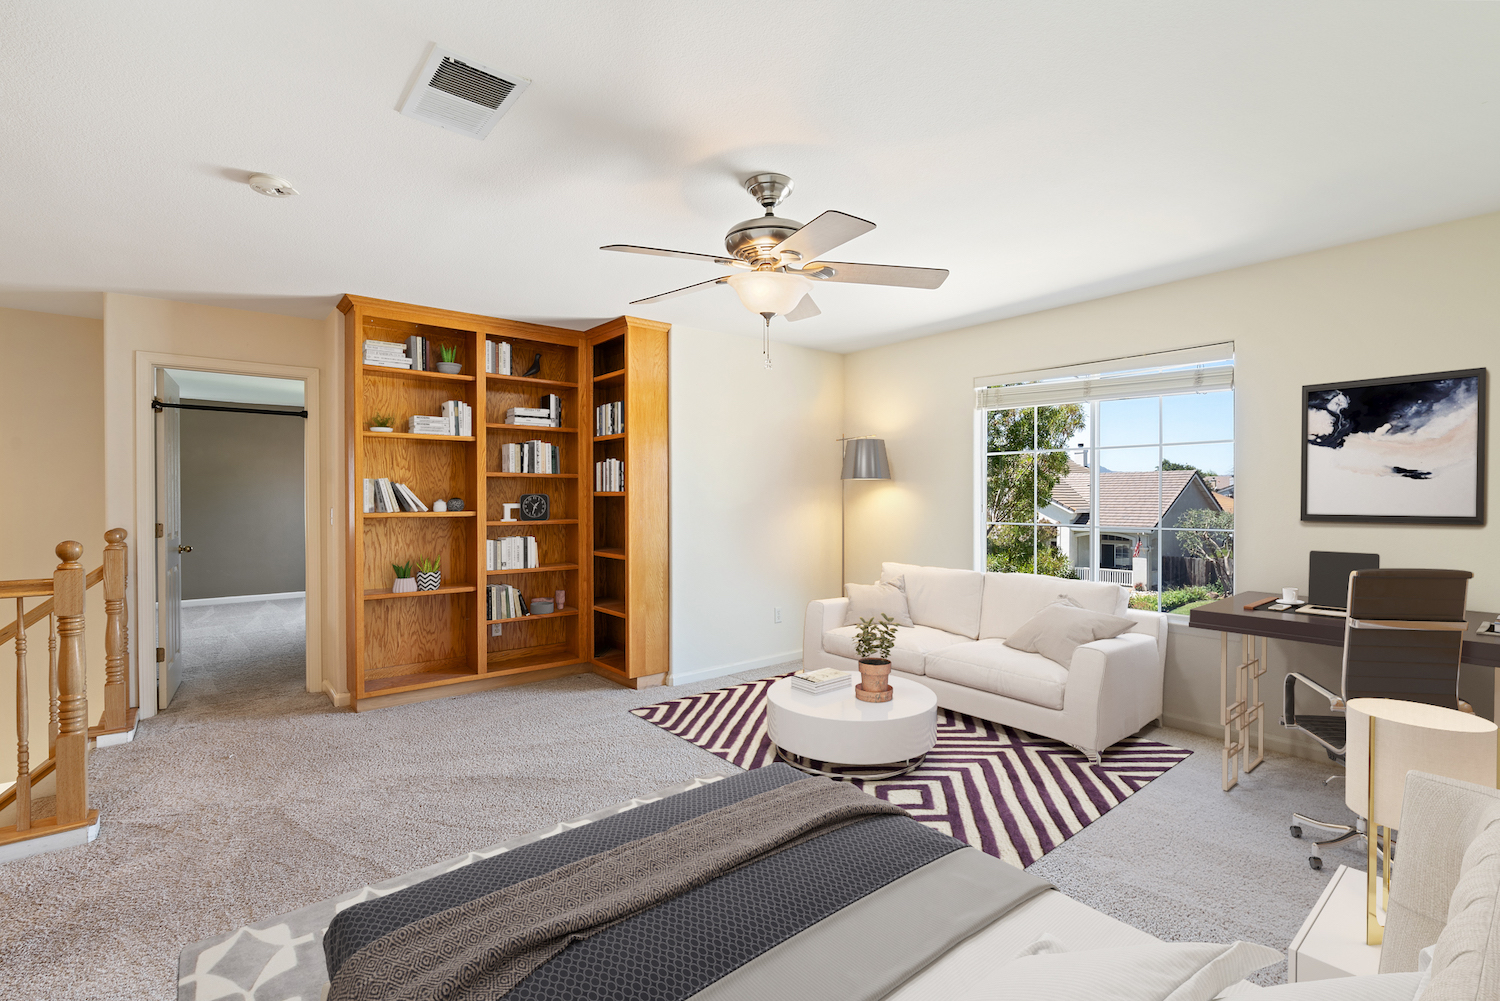 2241 glenview dr - upstairs open space furnished